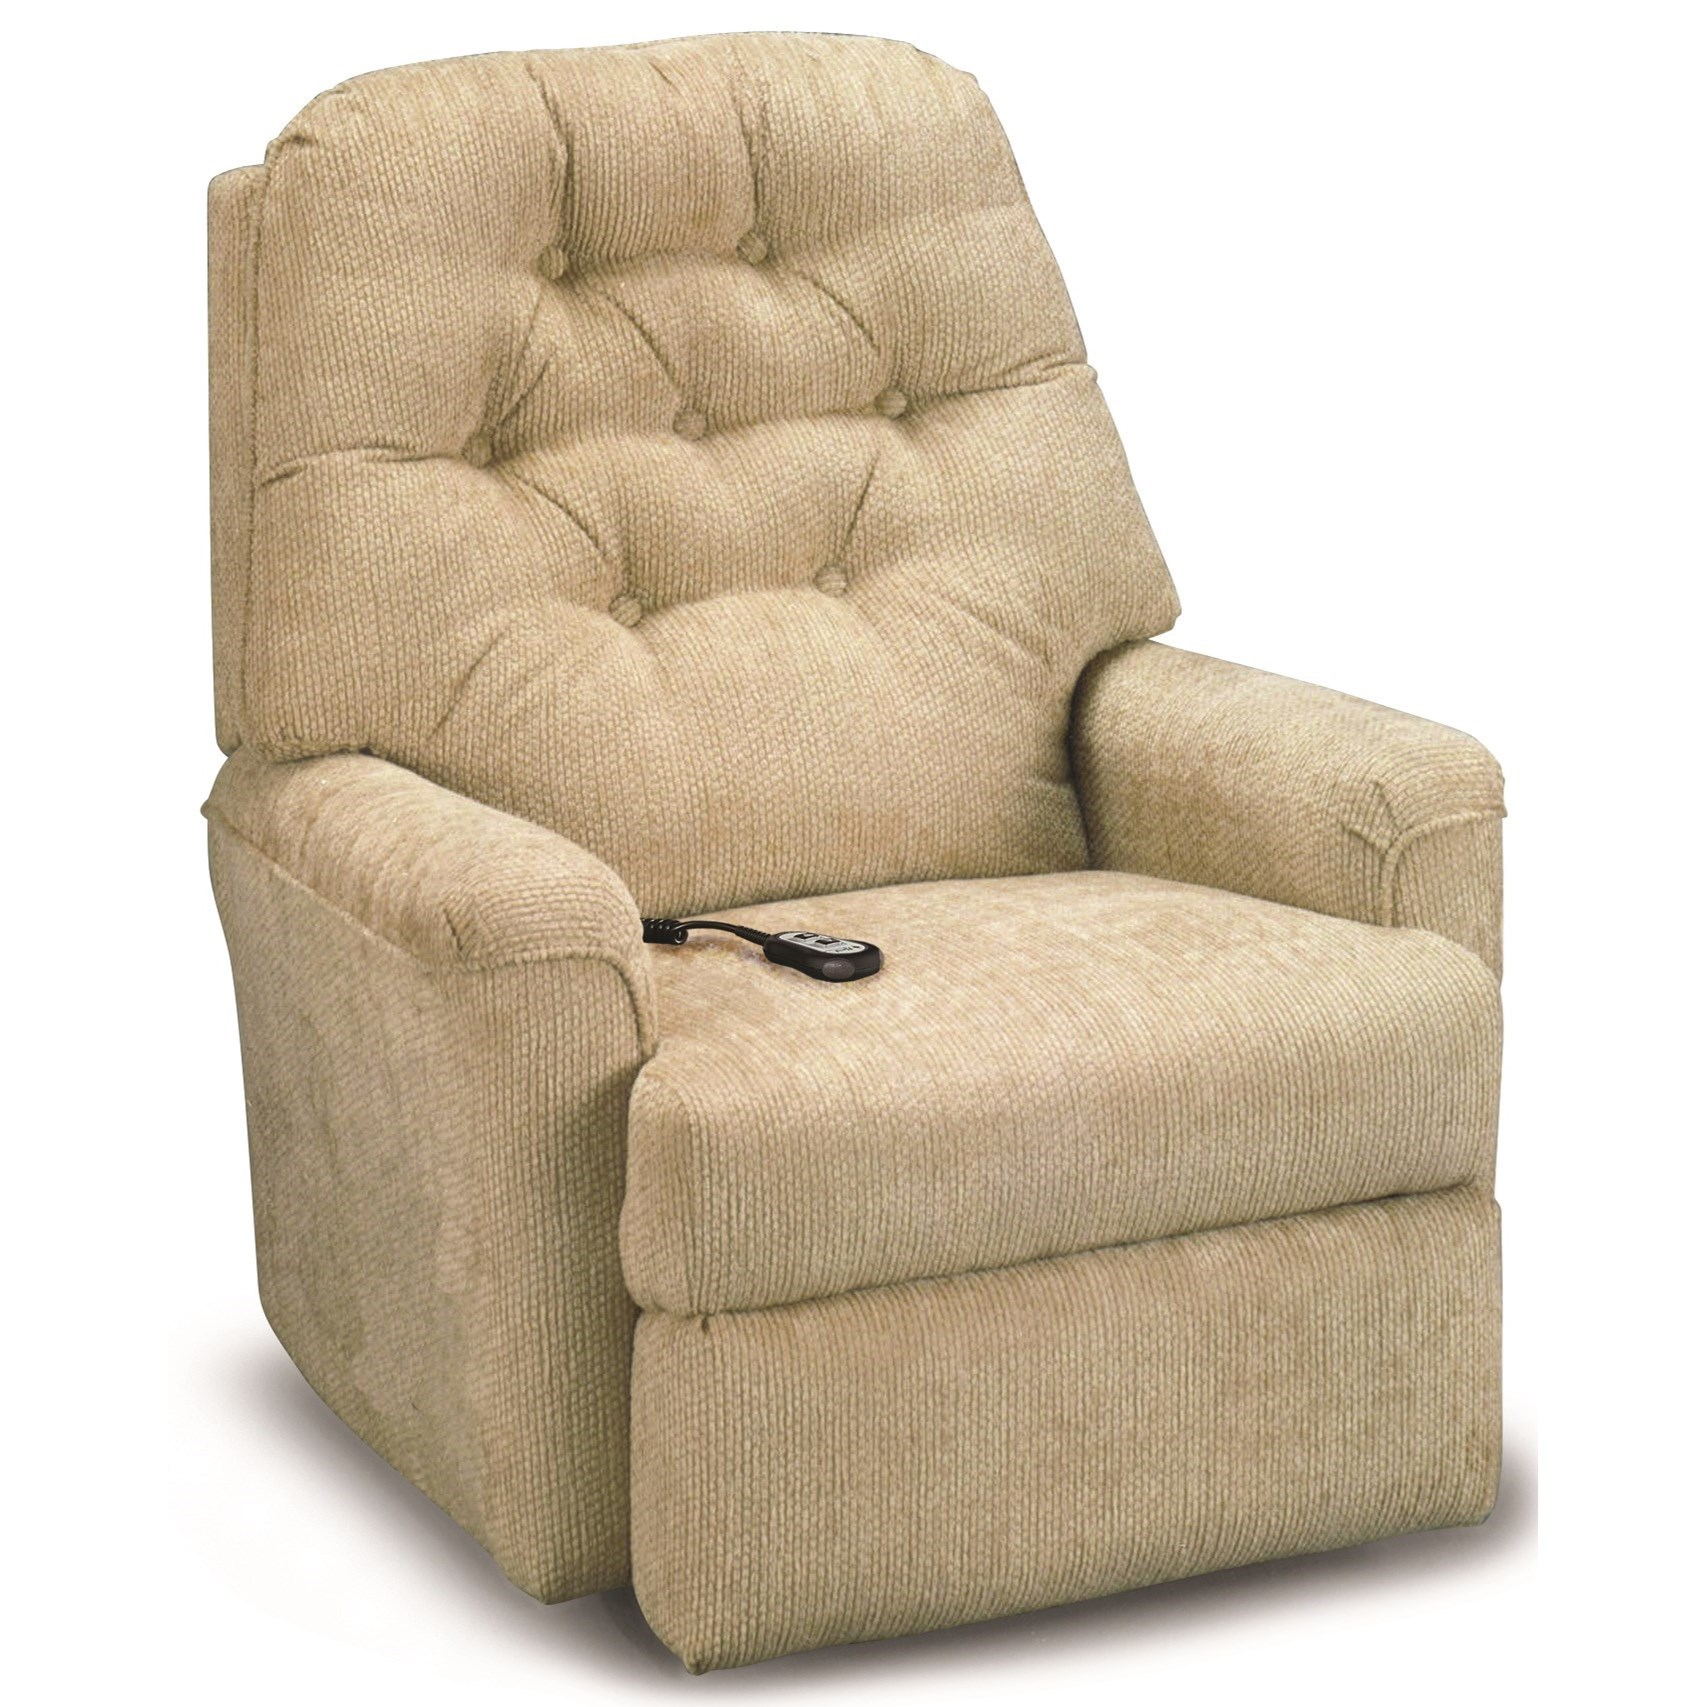 Petite Chairs Best Home Furnishings Recliners Petite Cara Lift